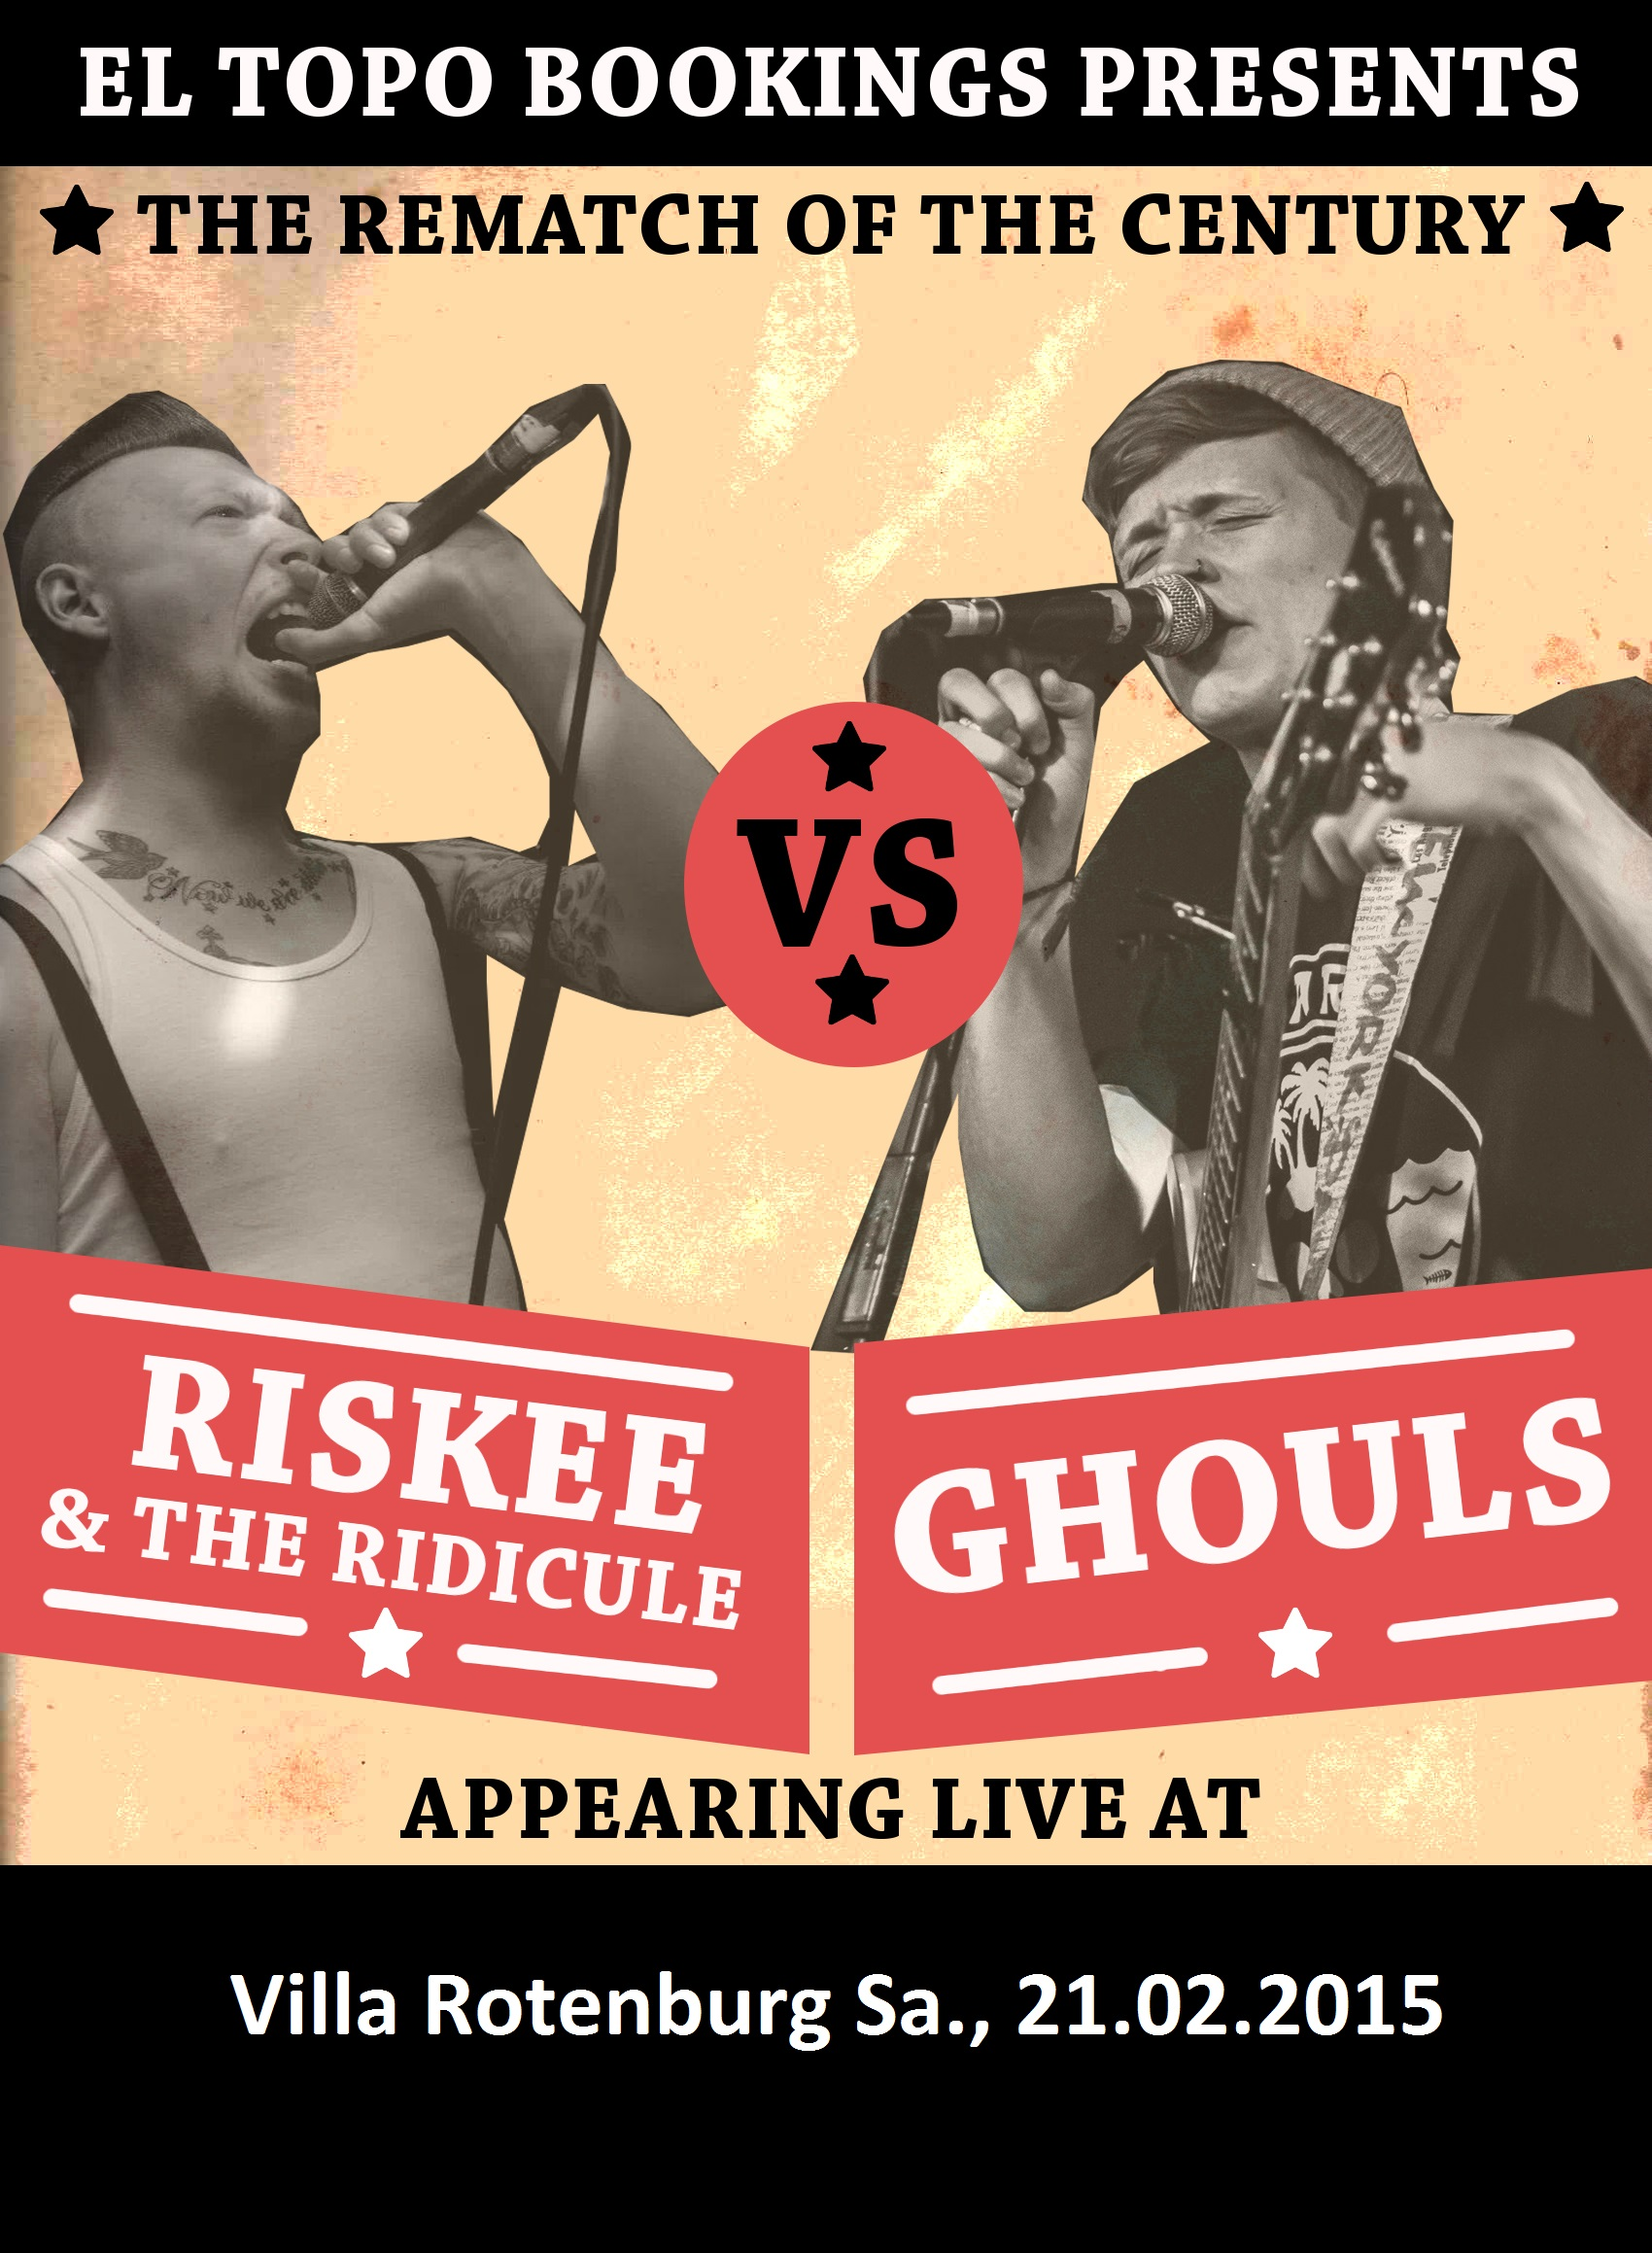 Ghouls (Punkrock, Ska, Gypsy, UK), Riskee And The Ridicule (Grime, Hip-Hop, Punk, UK)